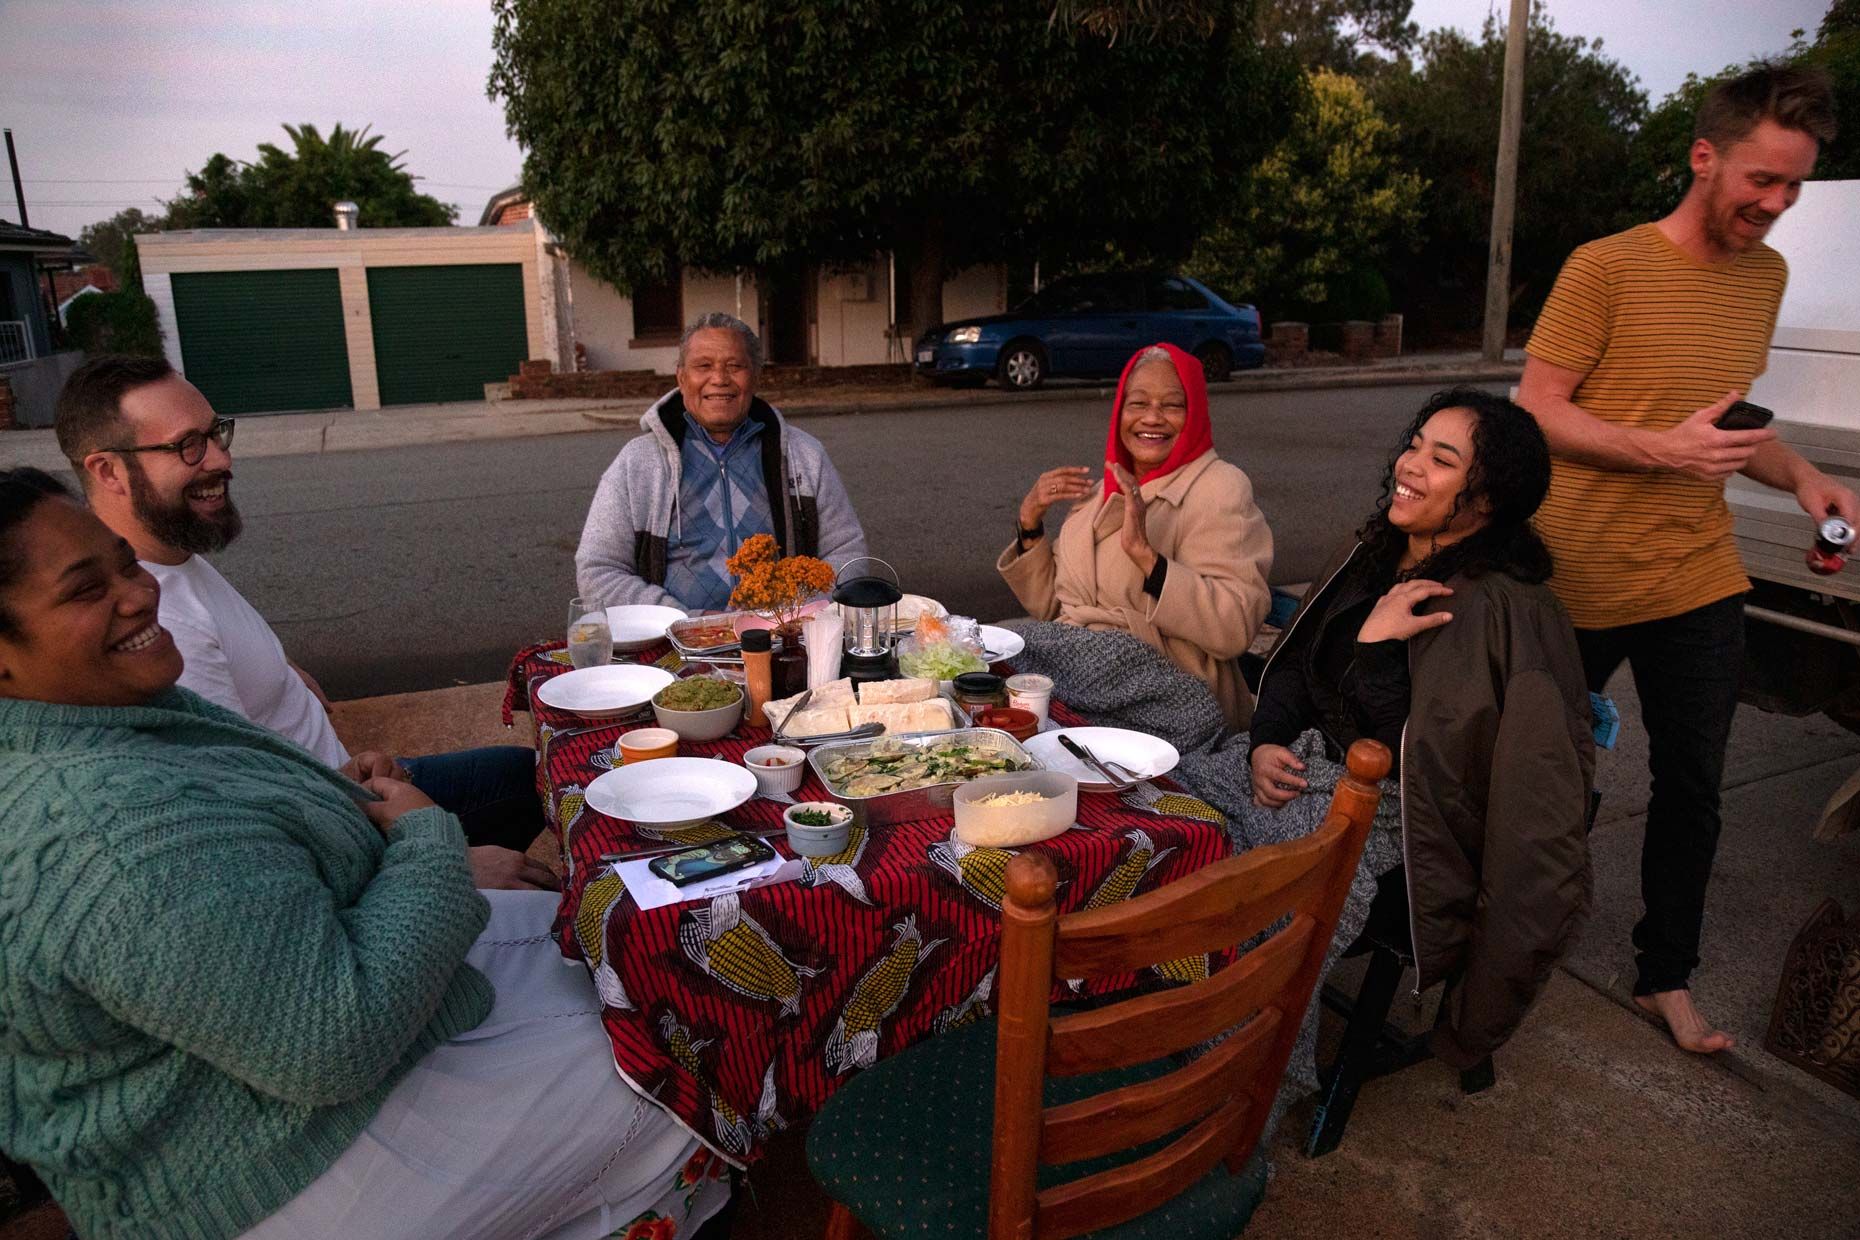 Family enjoying a driveway dinner during COVID-19 lockdown